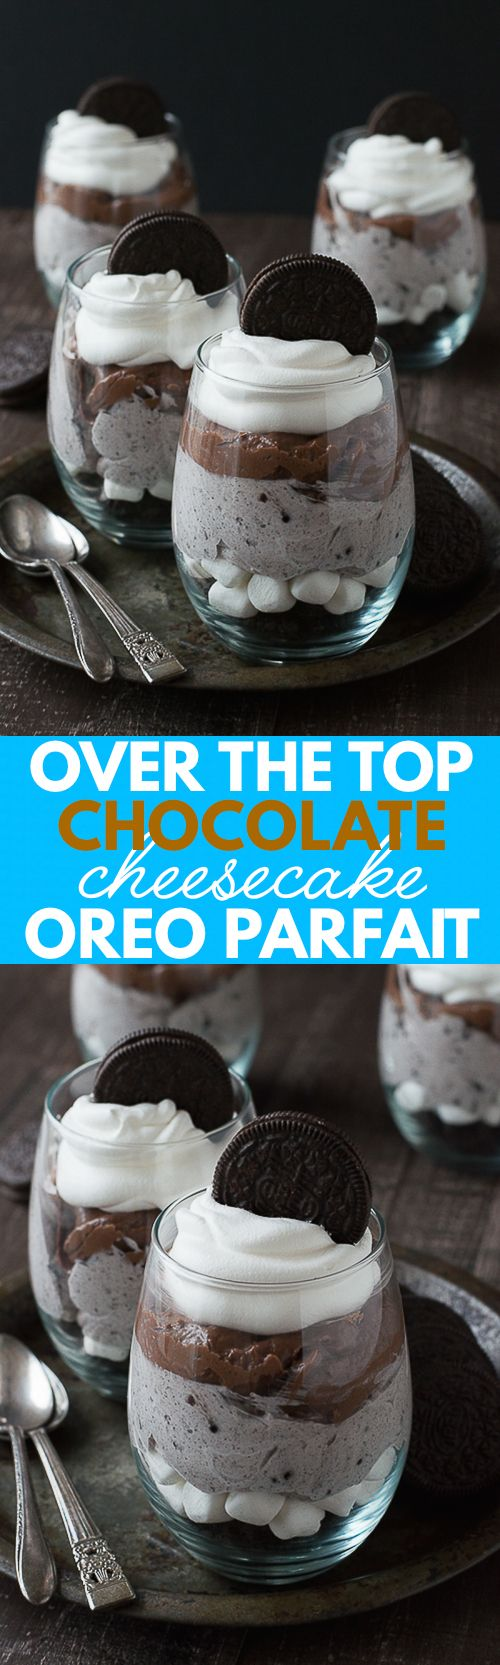 Over the Top Chocolate Cheesecake Oreo Parfaits